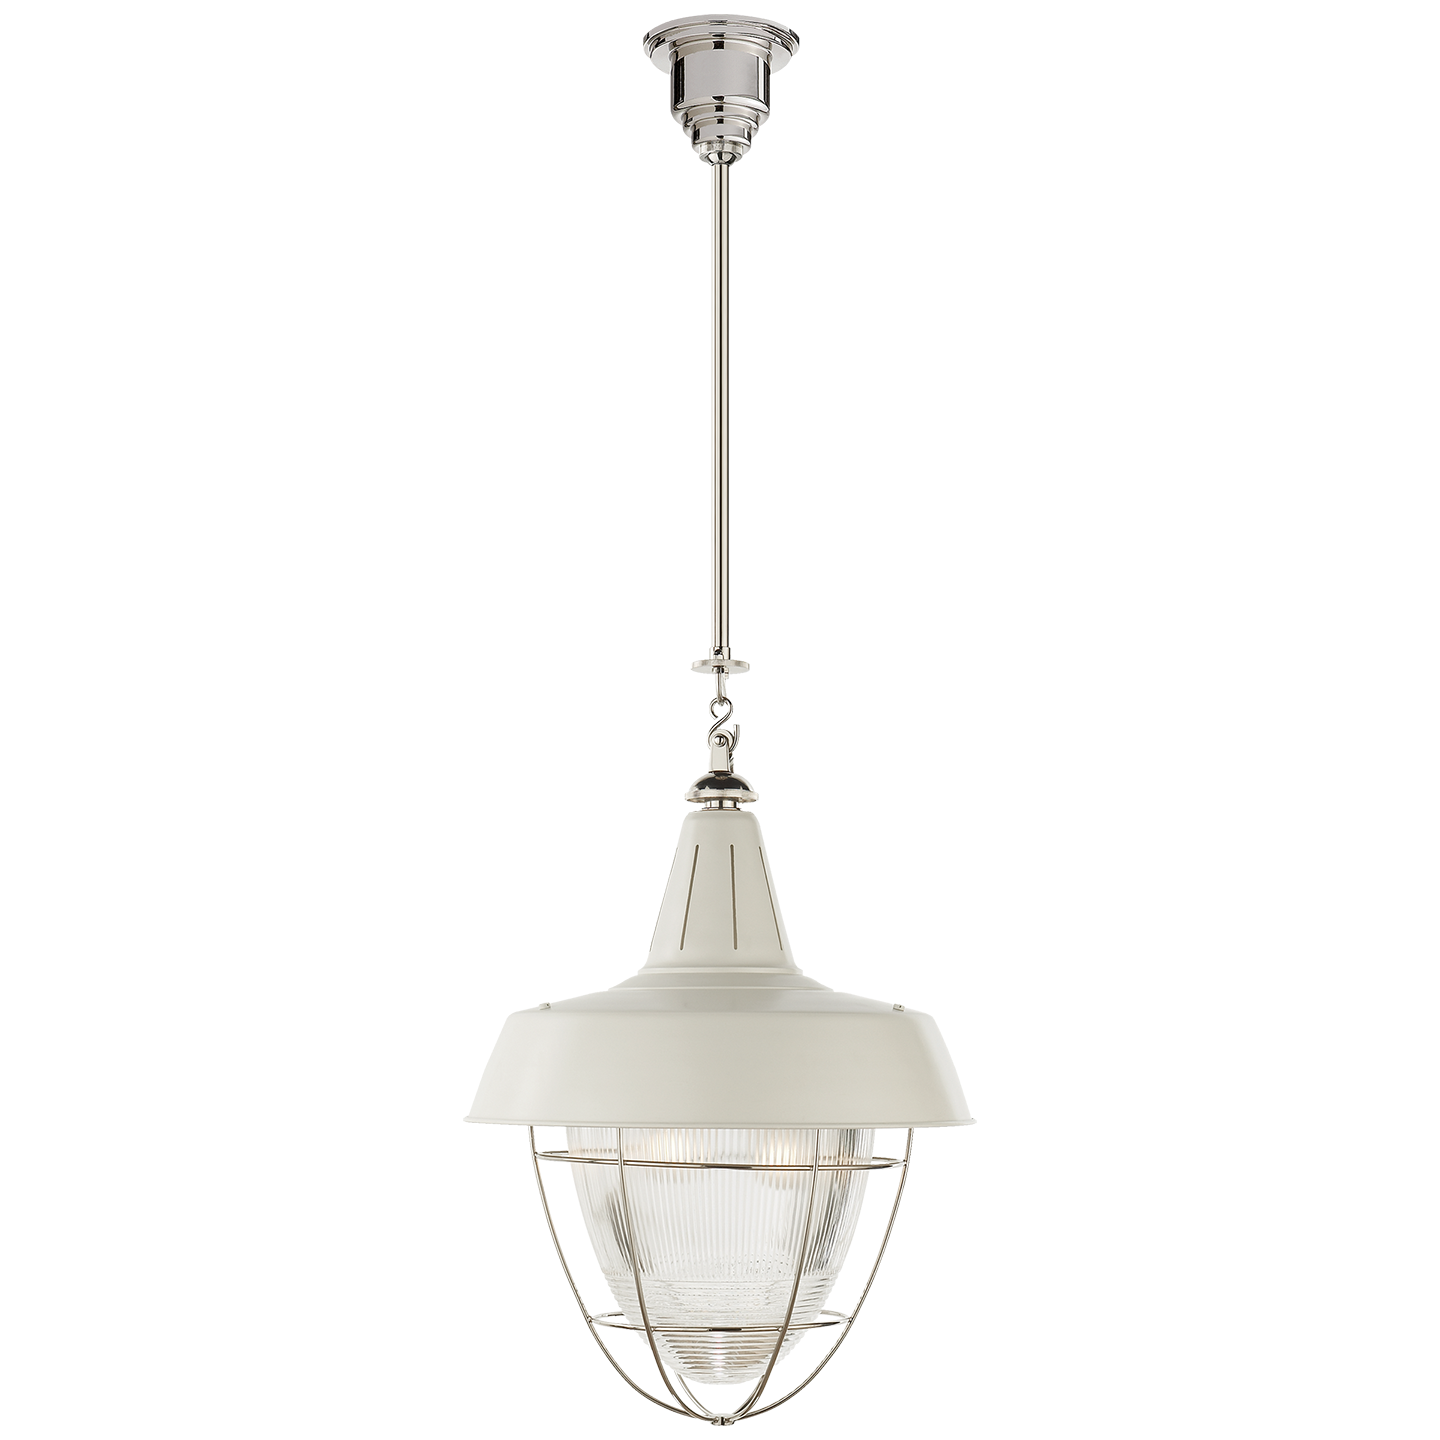 Henry Industrial Hanging Light In Polished Nickel And White Shade